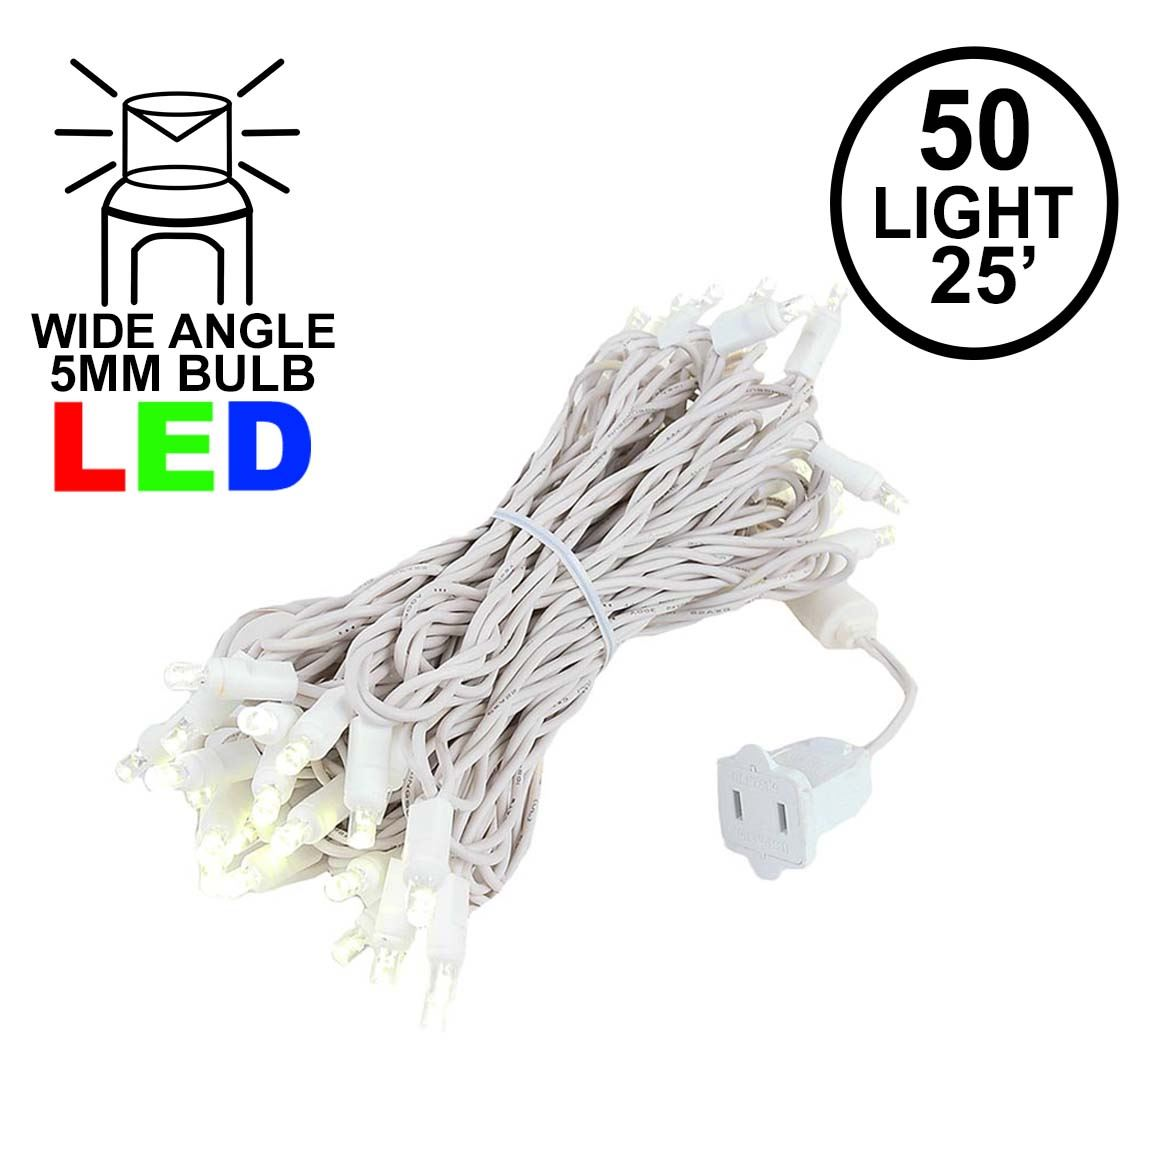 Picture of 50 Light 25' Long White Wire Mini Christmas Lights